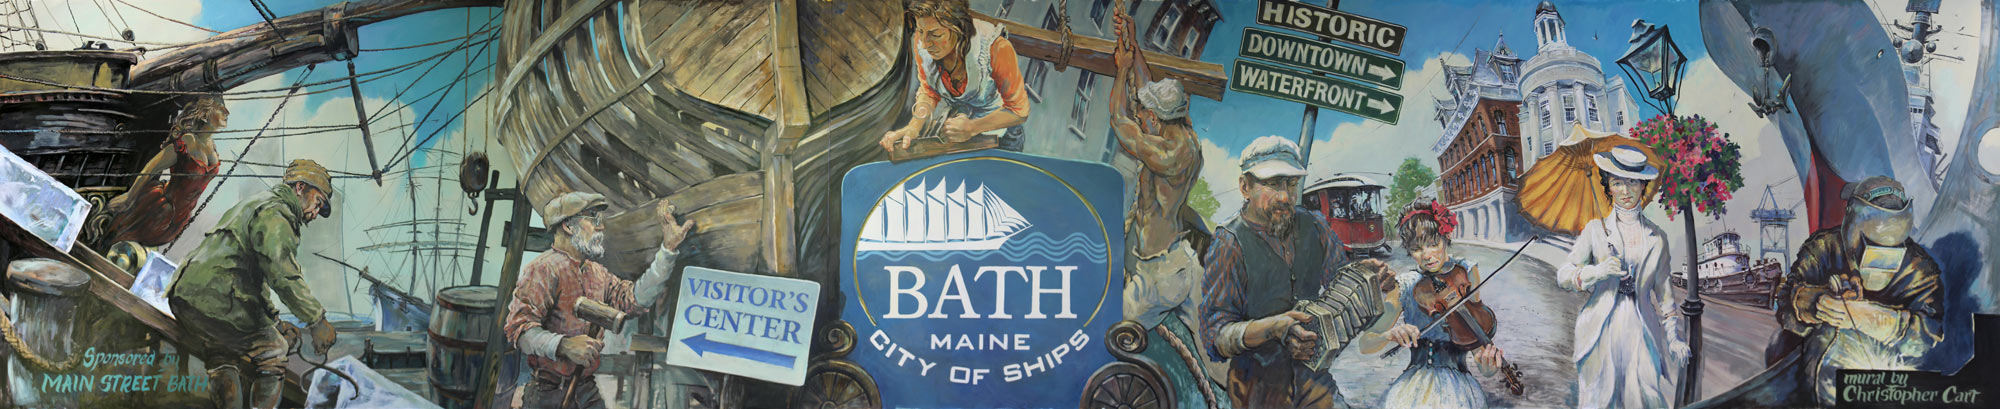 This is a mural I painted for Bath, Maine in 2016.  4 x 22 feet.